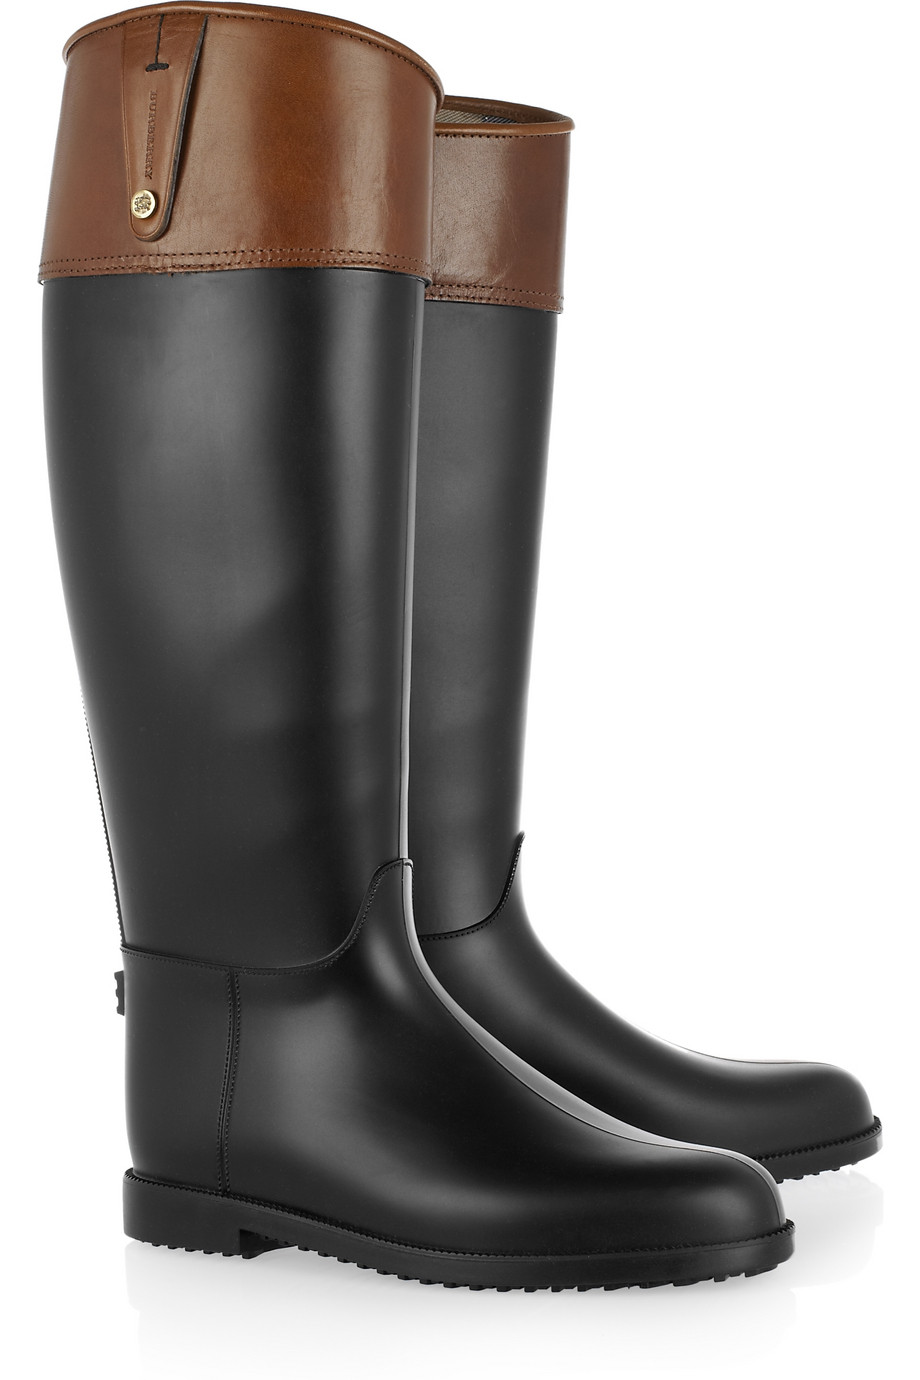 Burberry Rubber Wellington Boots In Black Brown Lyst